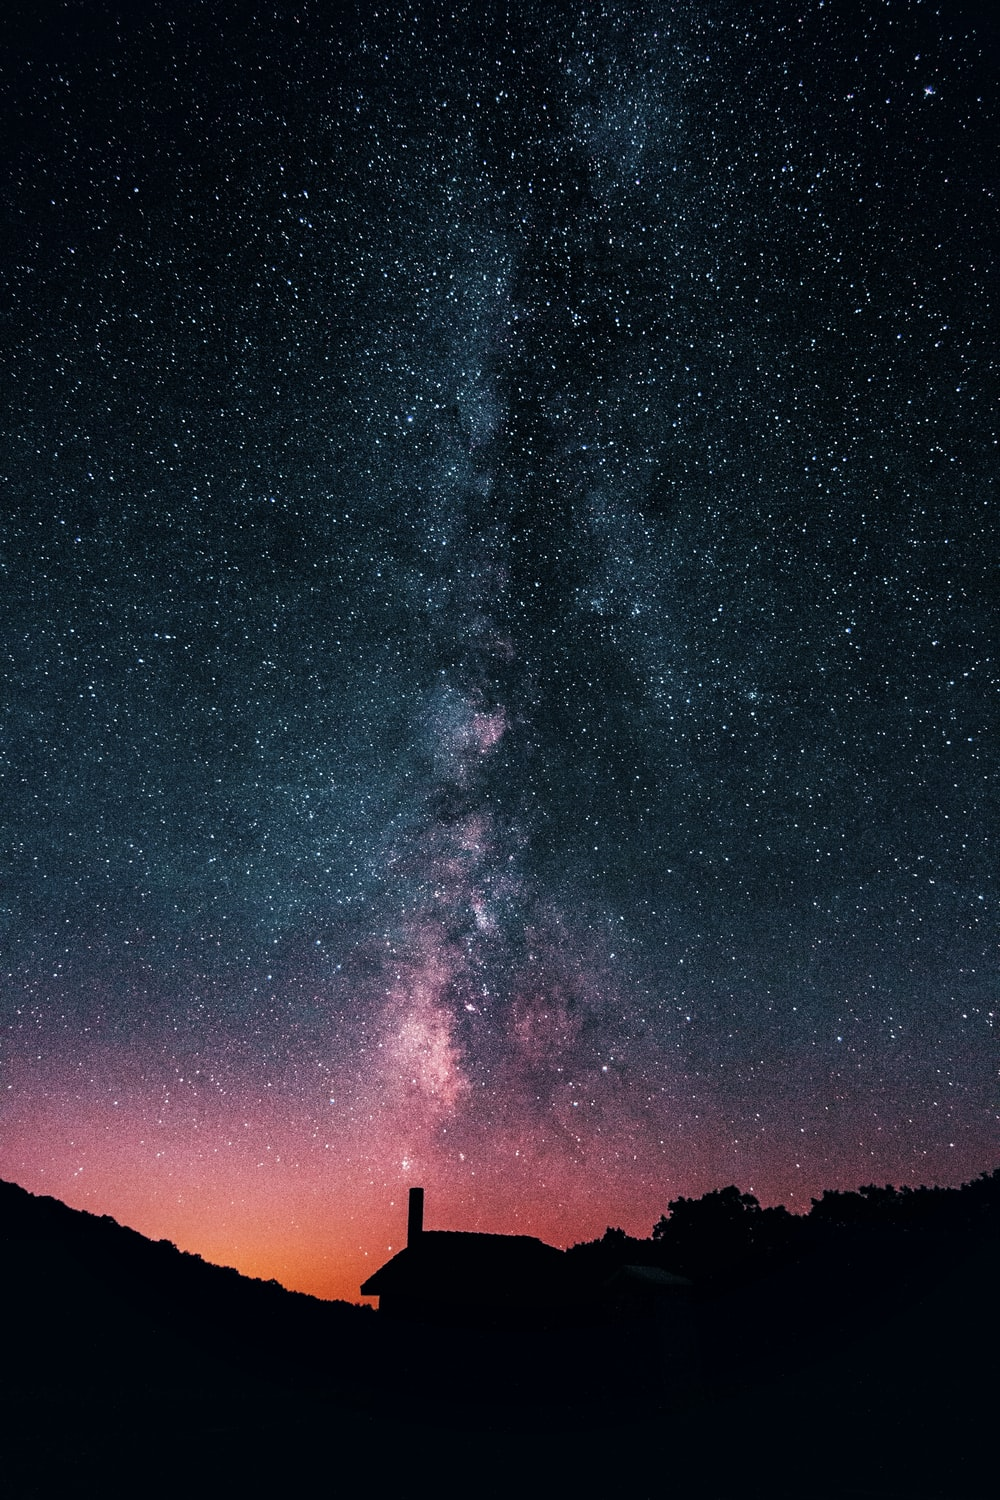 silhouette of house under starry night